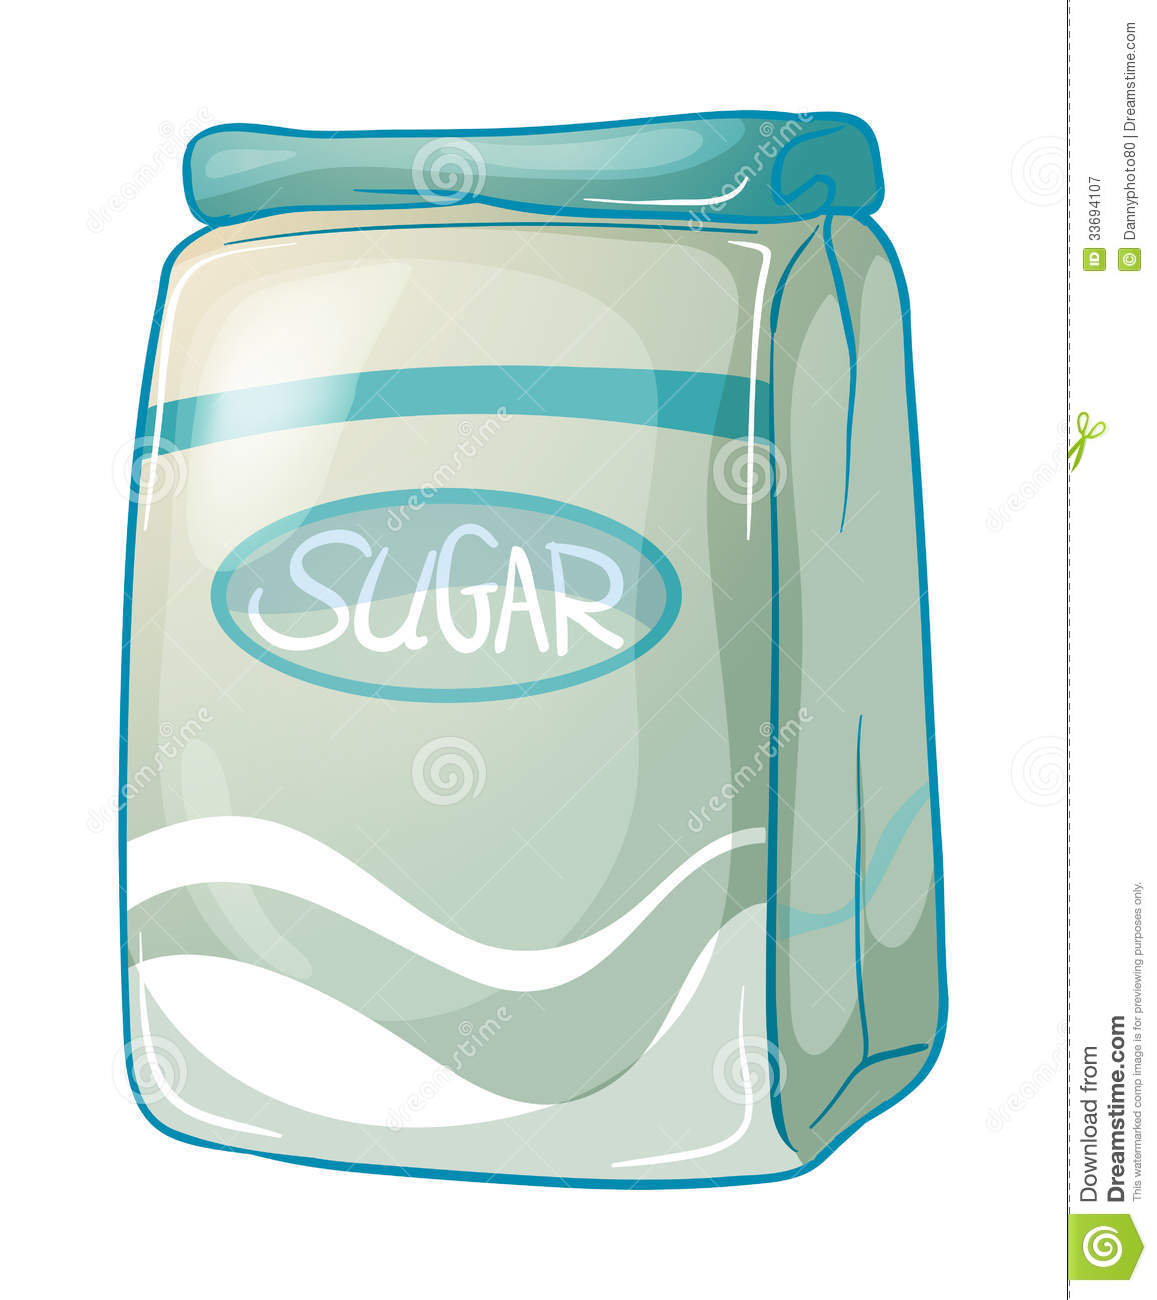 Pack Of Sugar Royalty Free Stock Photography - Image: 33694107